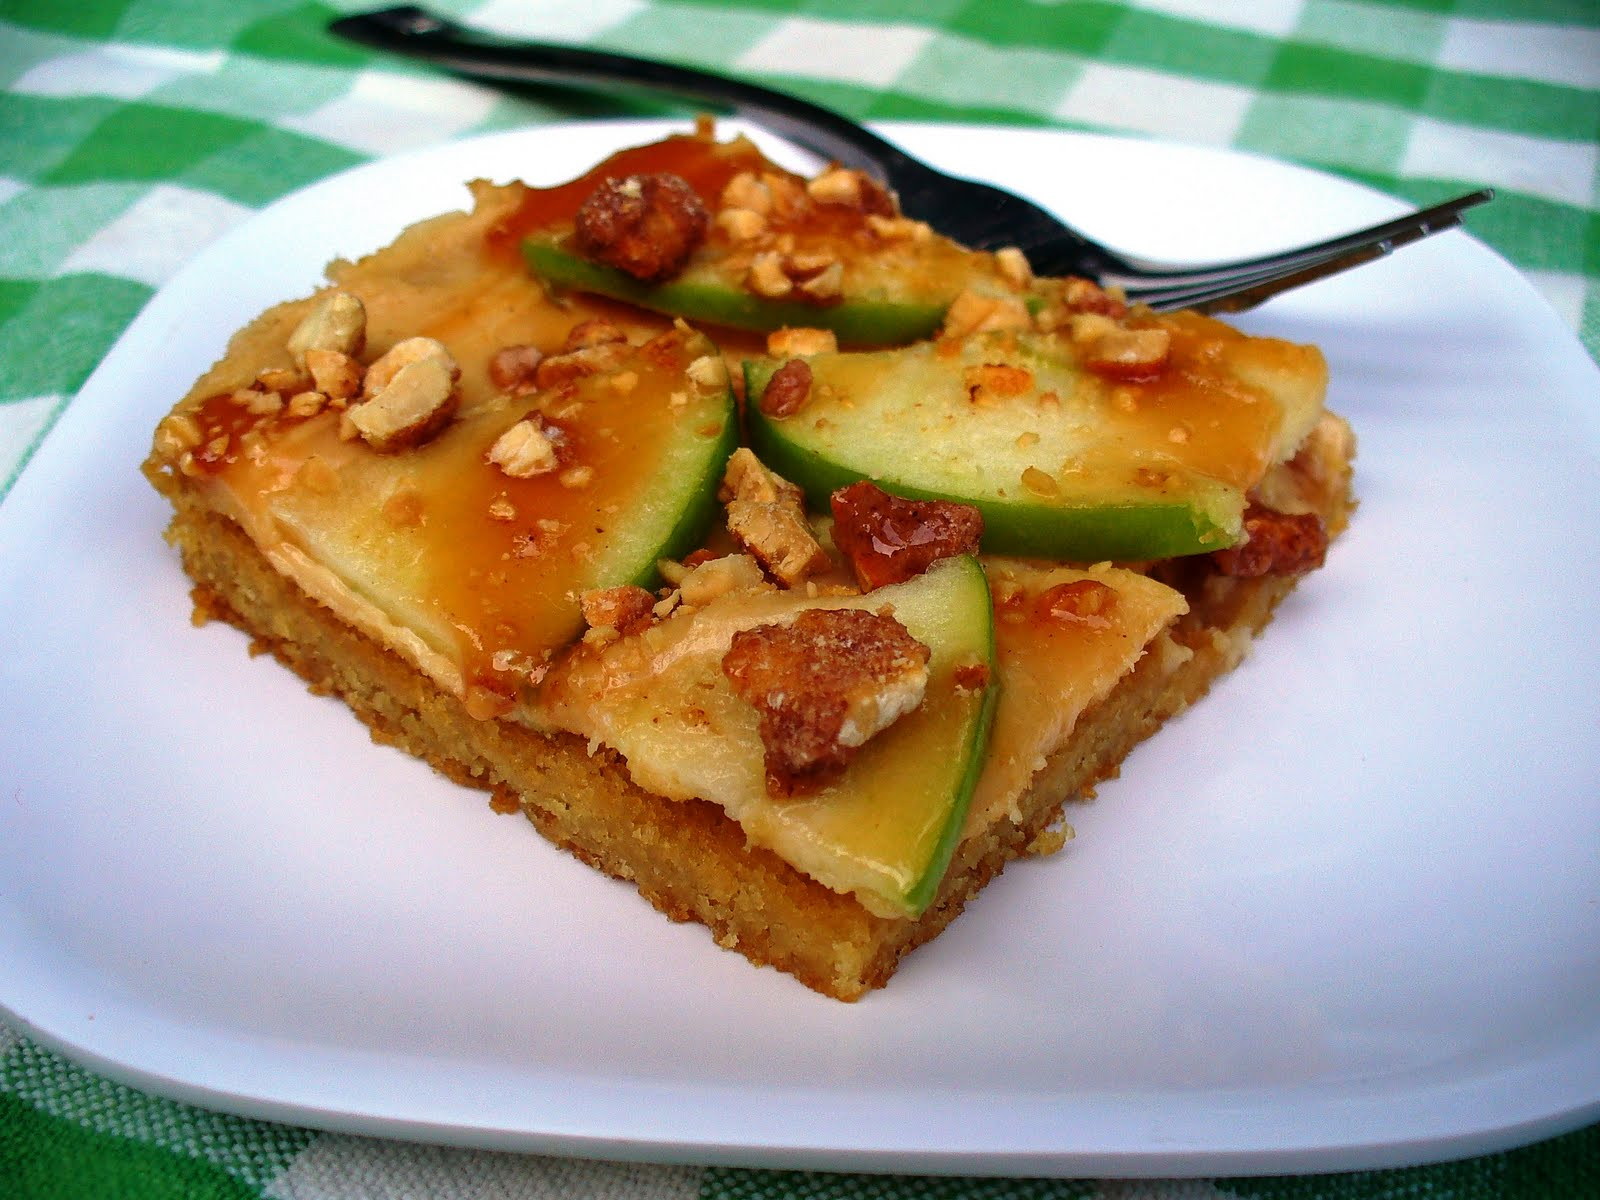 Leenee's Sweetest Delights: Peanut Butter Caramel Apple Cookie Bars